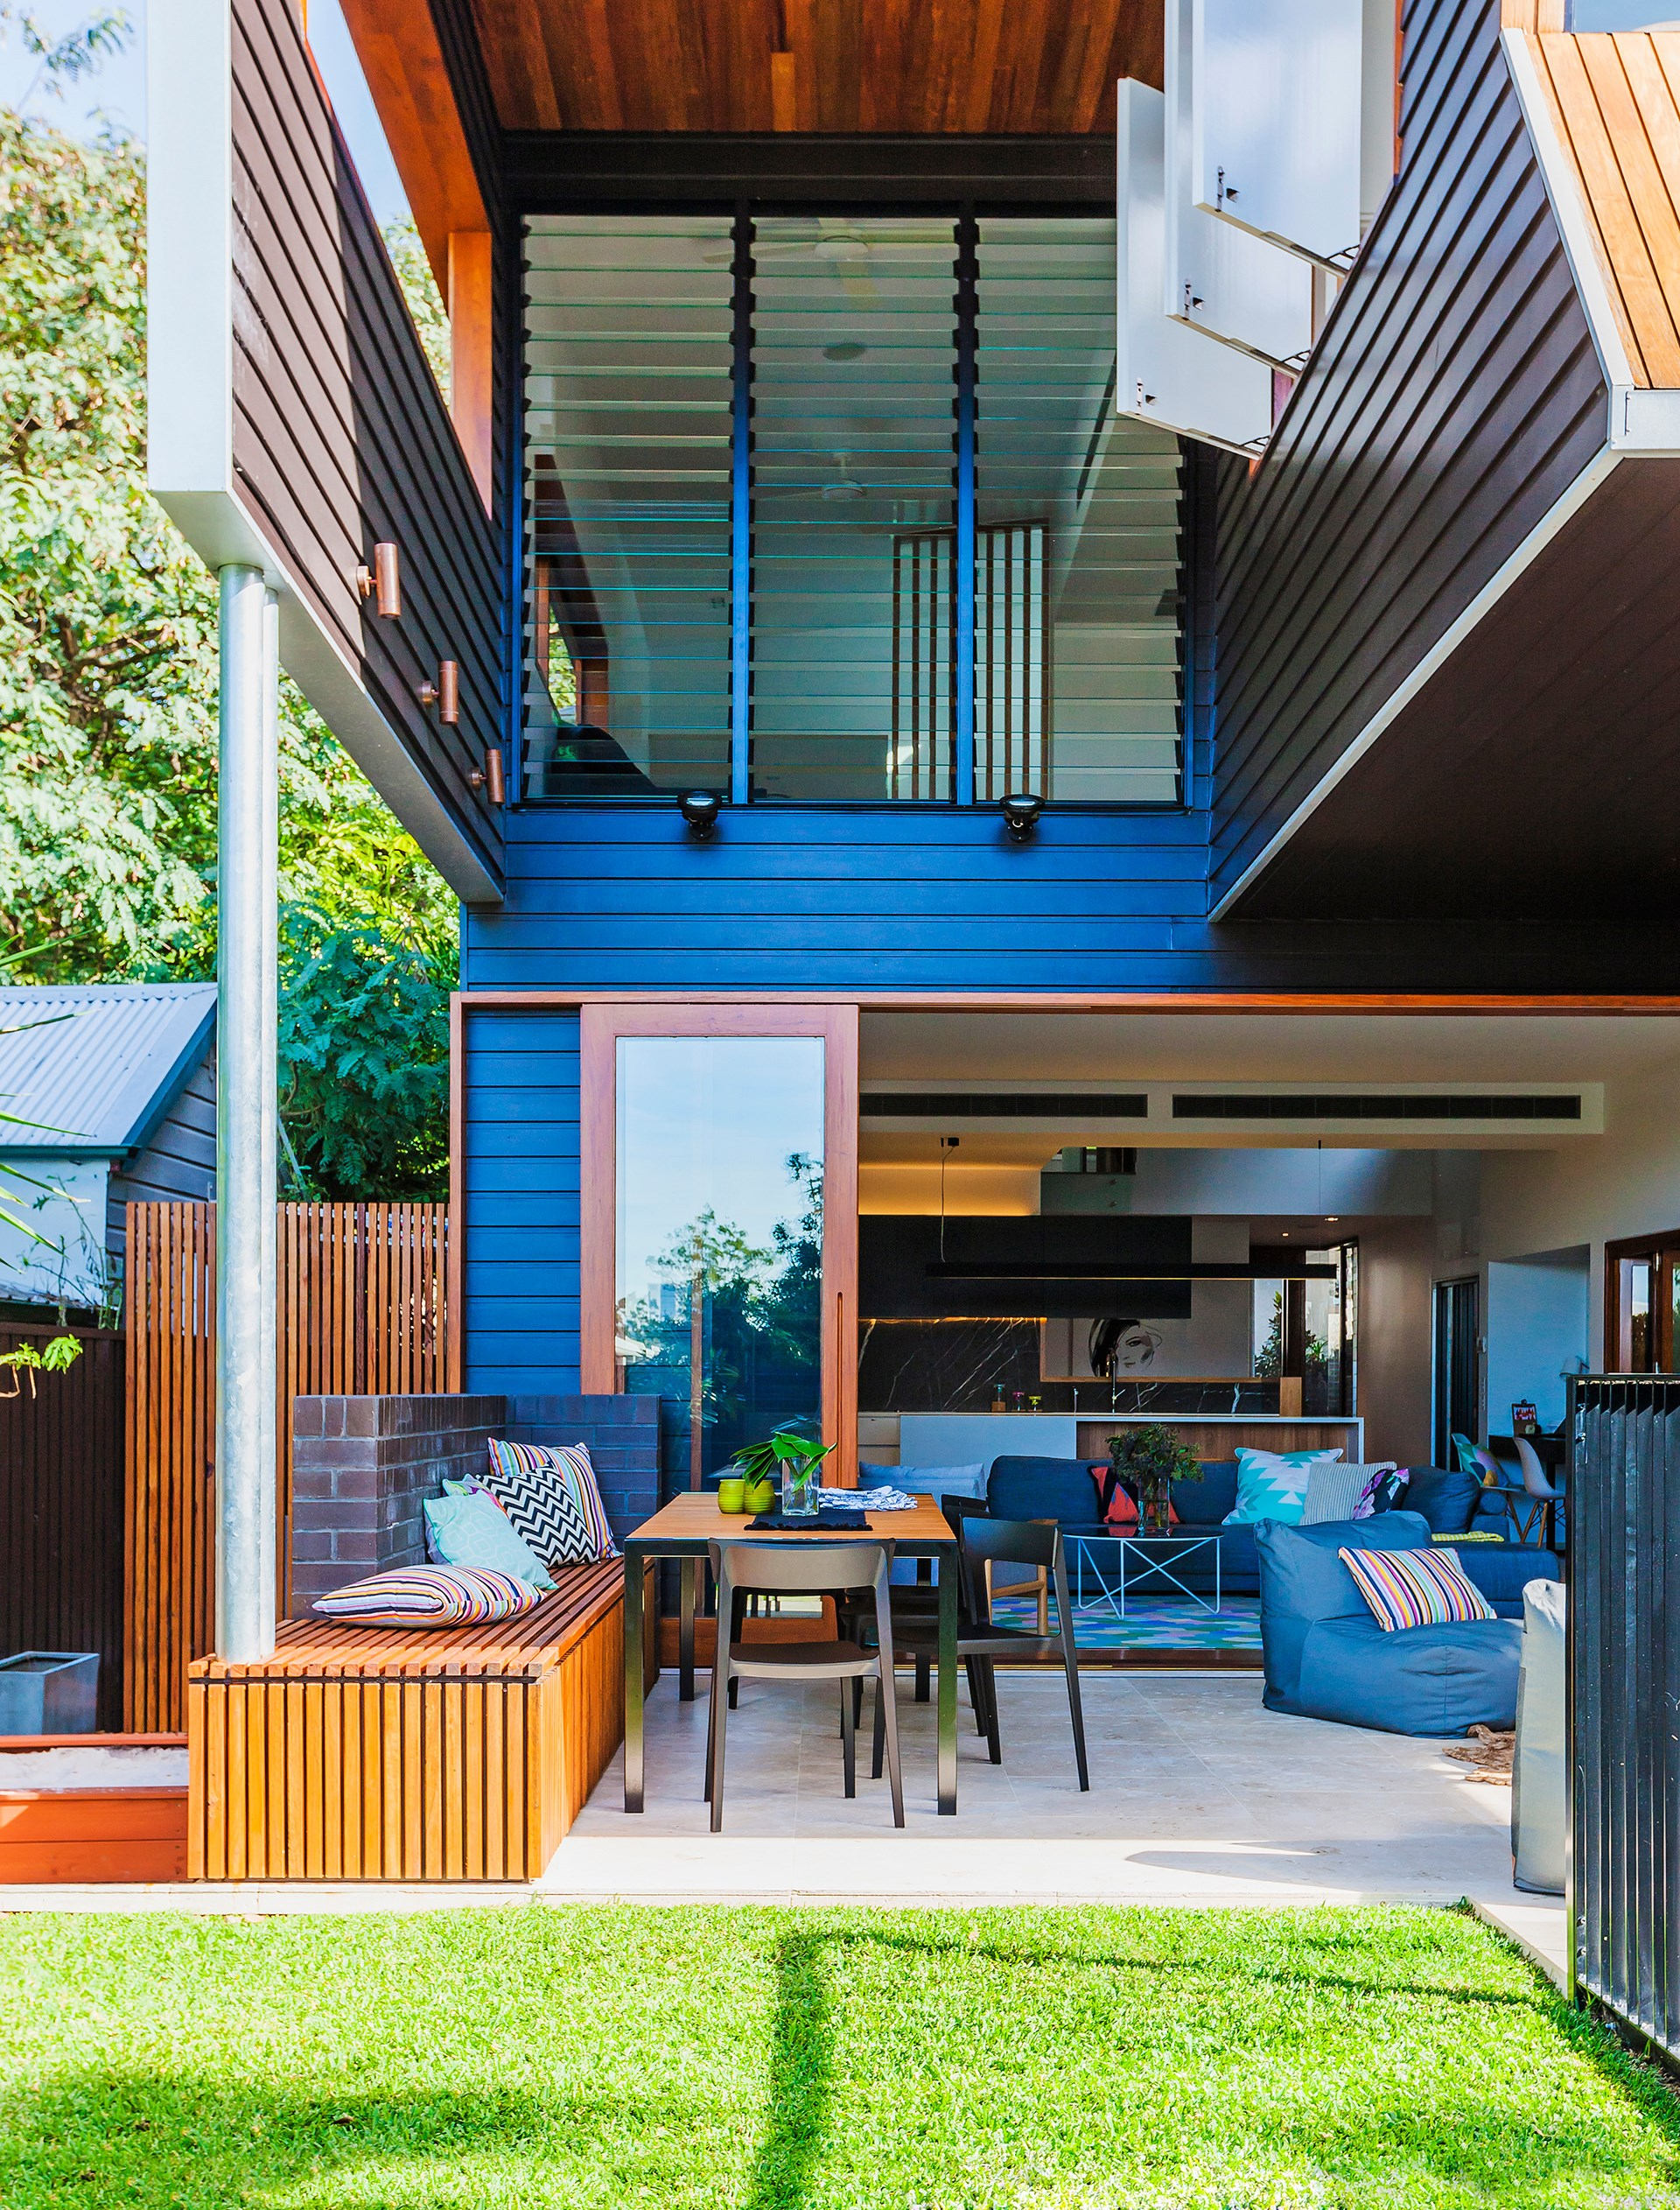 """Once an old weatherboard cottage in Brisbane, architect [Shaun Lockyer](http://lockyerarchitects.com.au//?utm_campaign=supplier/